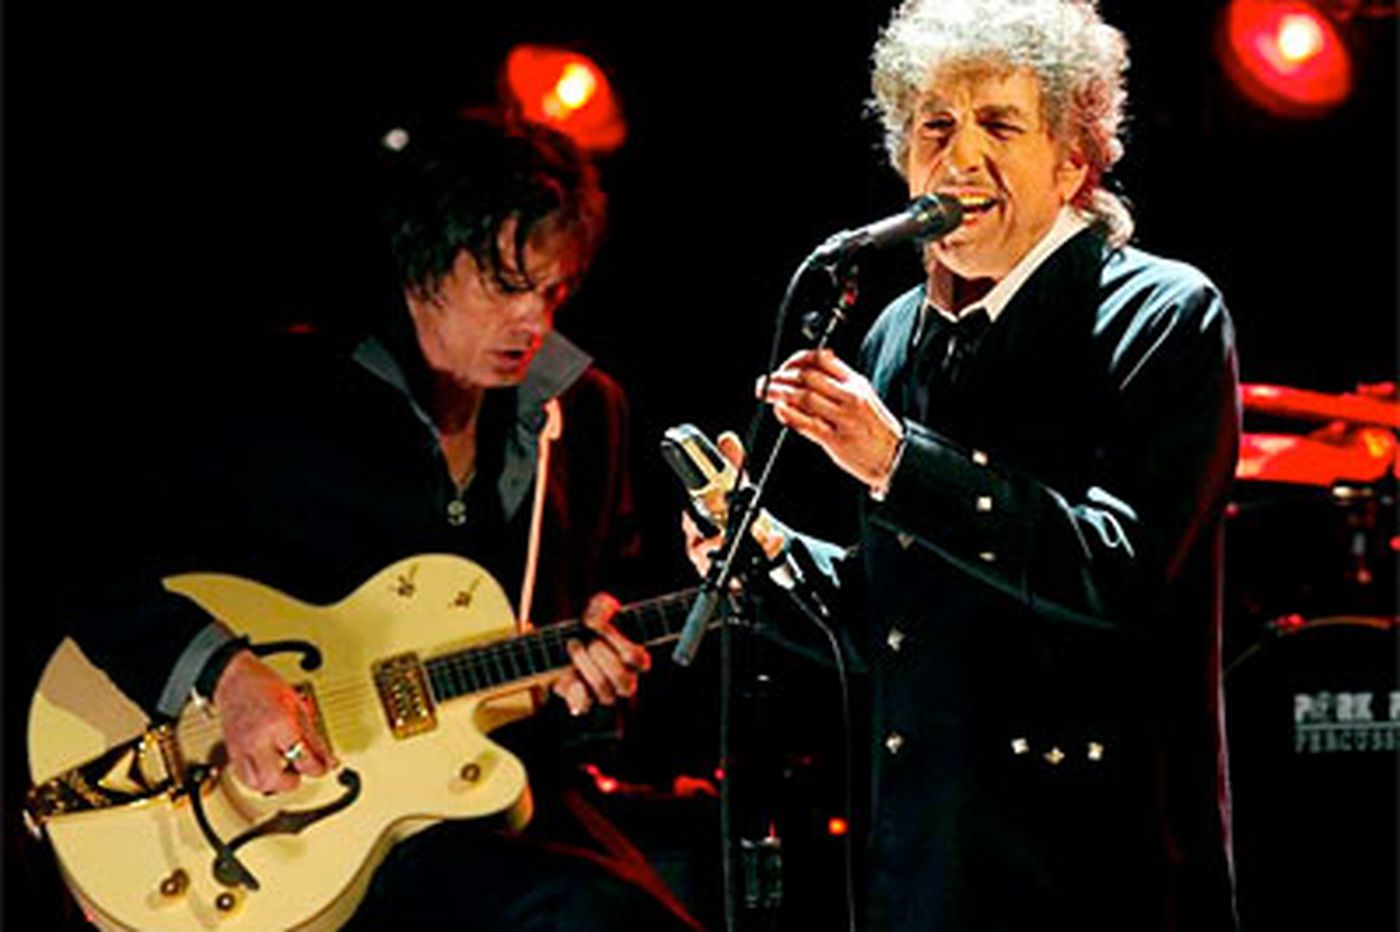 Ragged, jagged Dylan brings it home at Wells Fargo Center